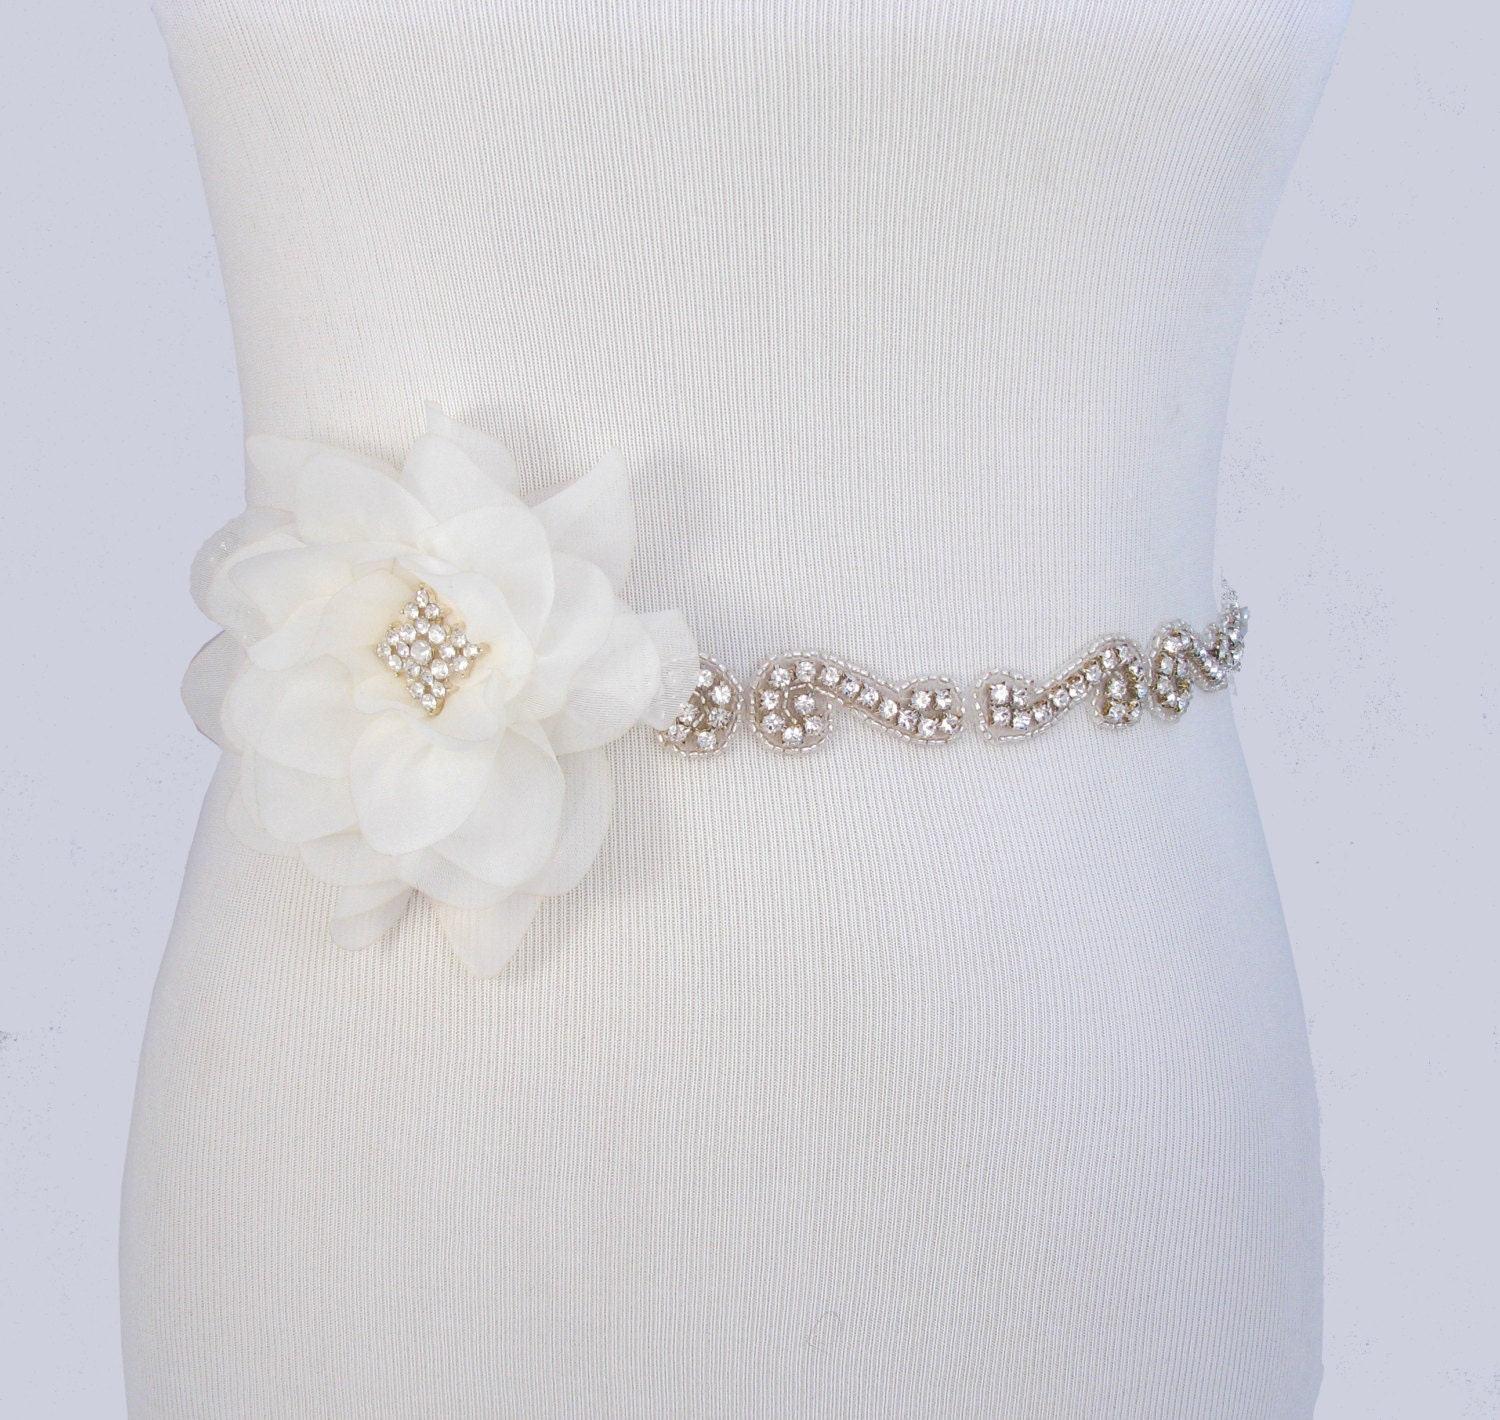 Flower Wedding Dress Sash Crystal Rhinestone Bridal Belt